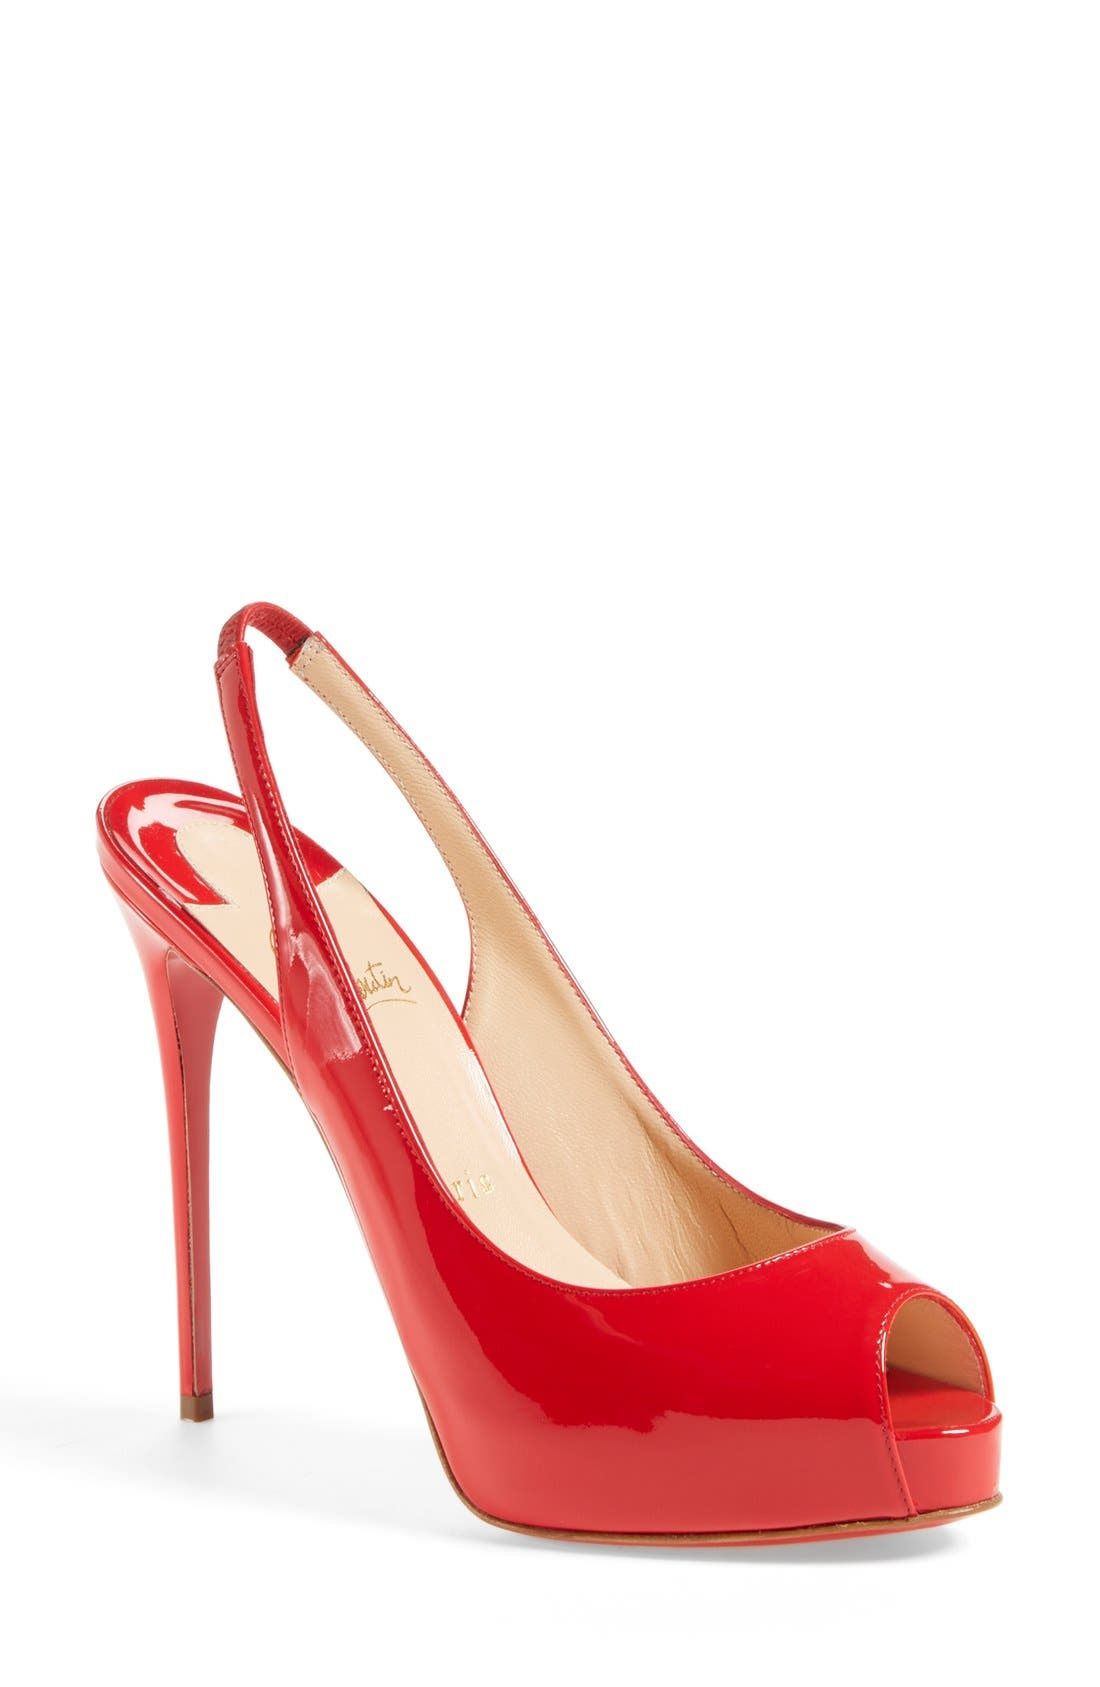 Alternate Image 1 Selected - Christian Louboutin 'Private Number' Peep Toe Slingback Pump